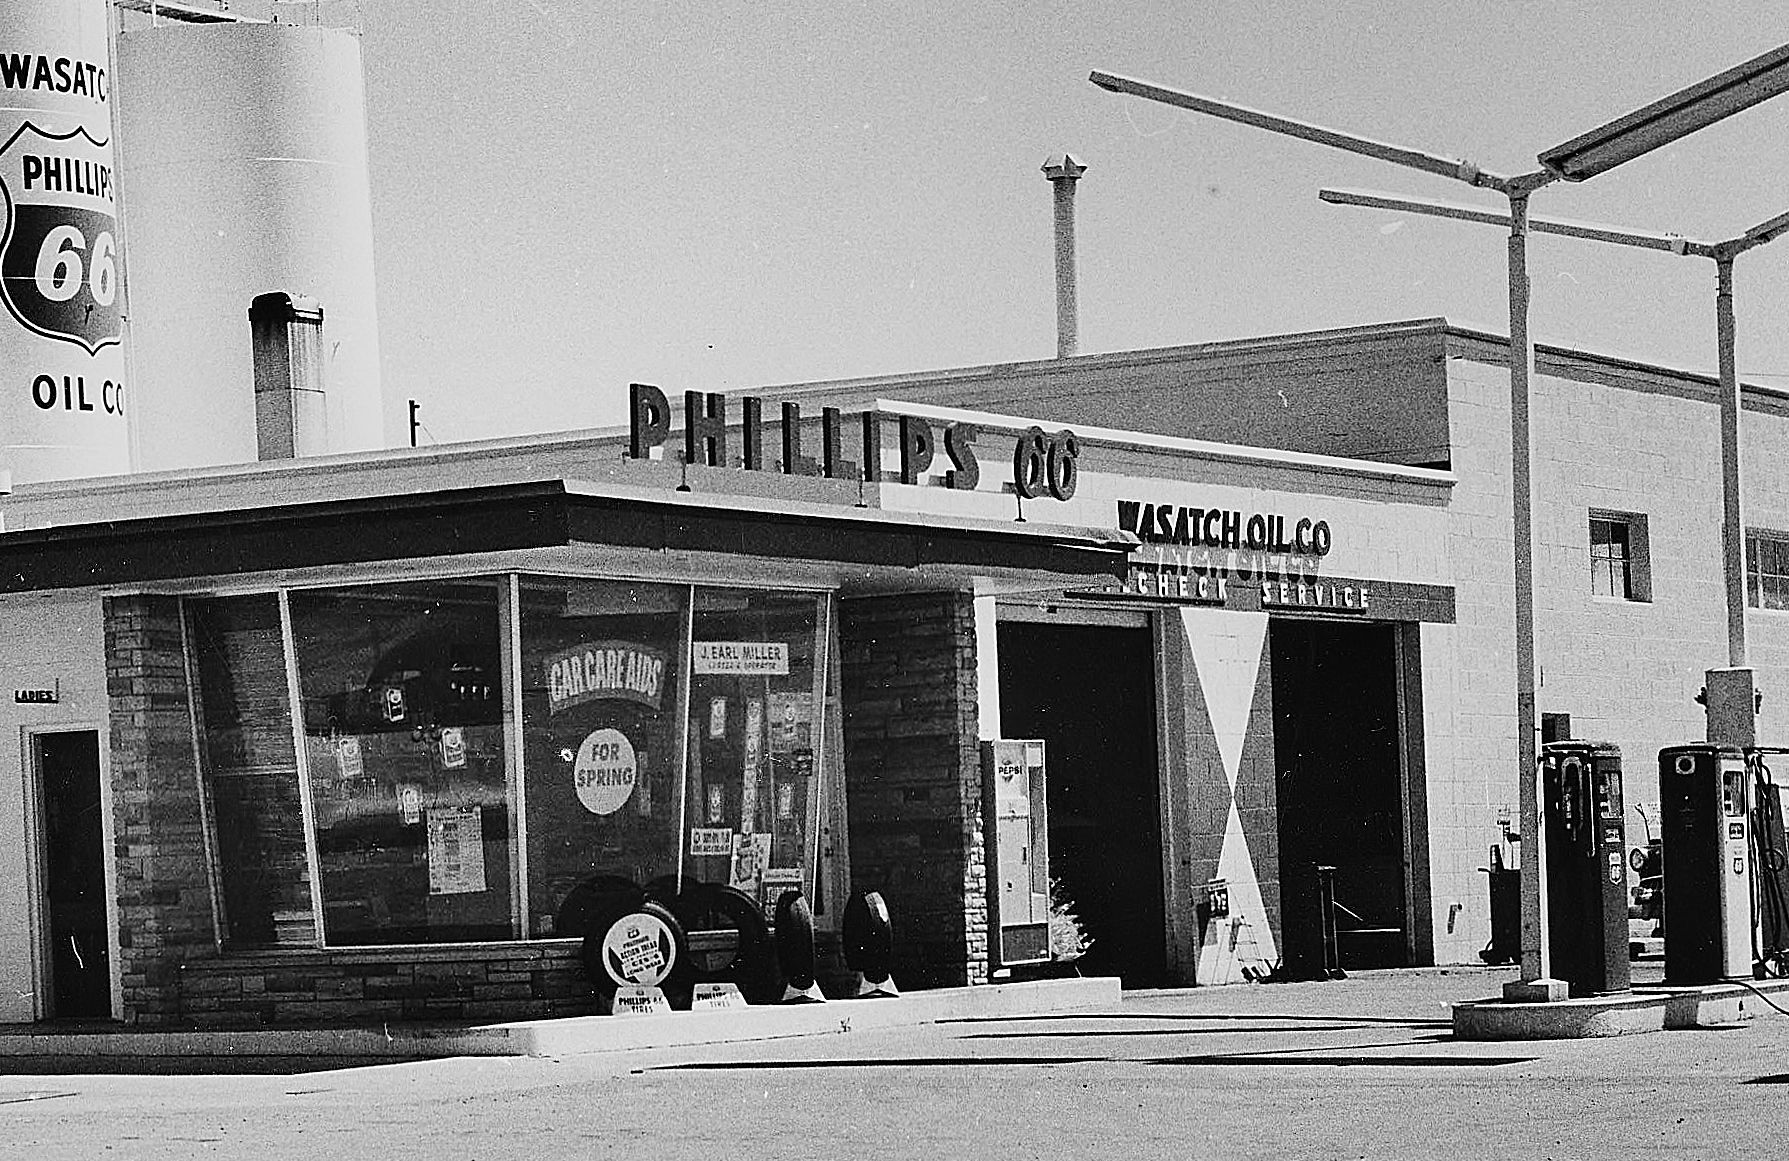 Phillips 66 service station on 13th and wall in ogden